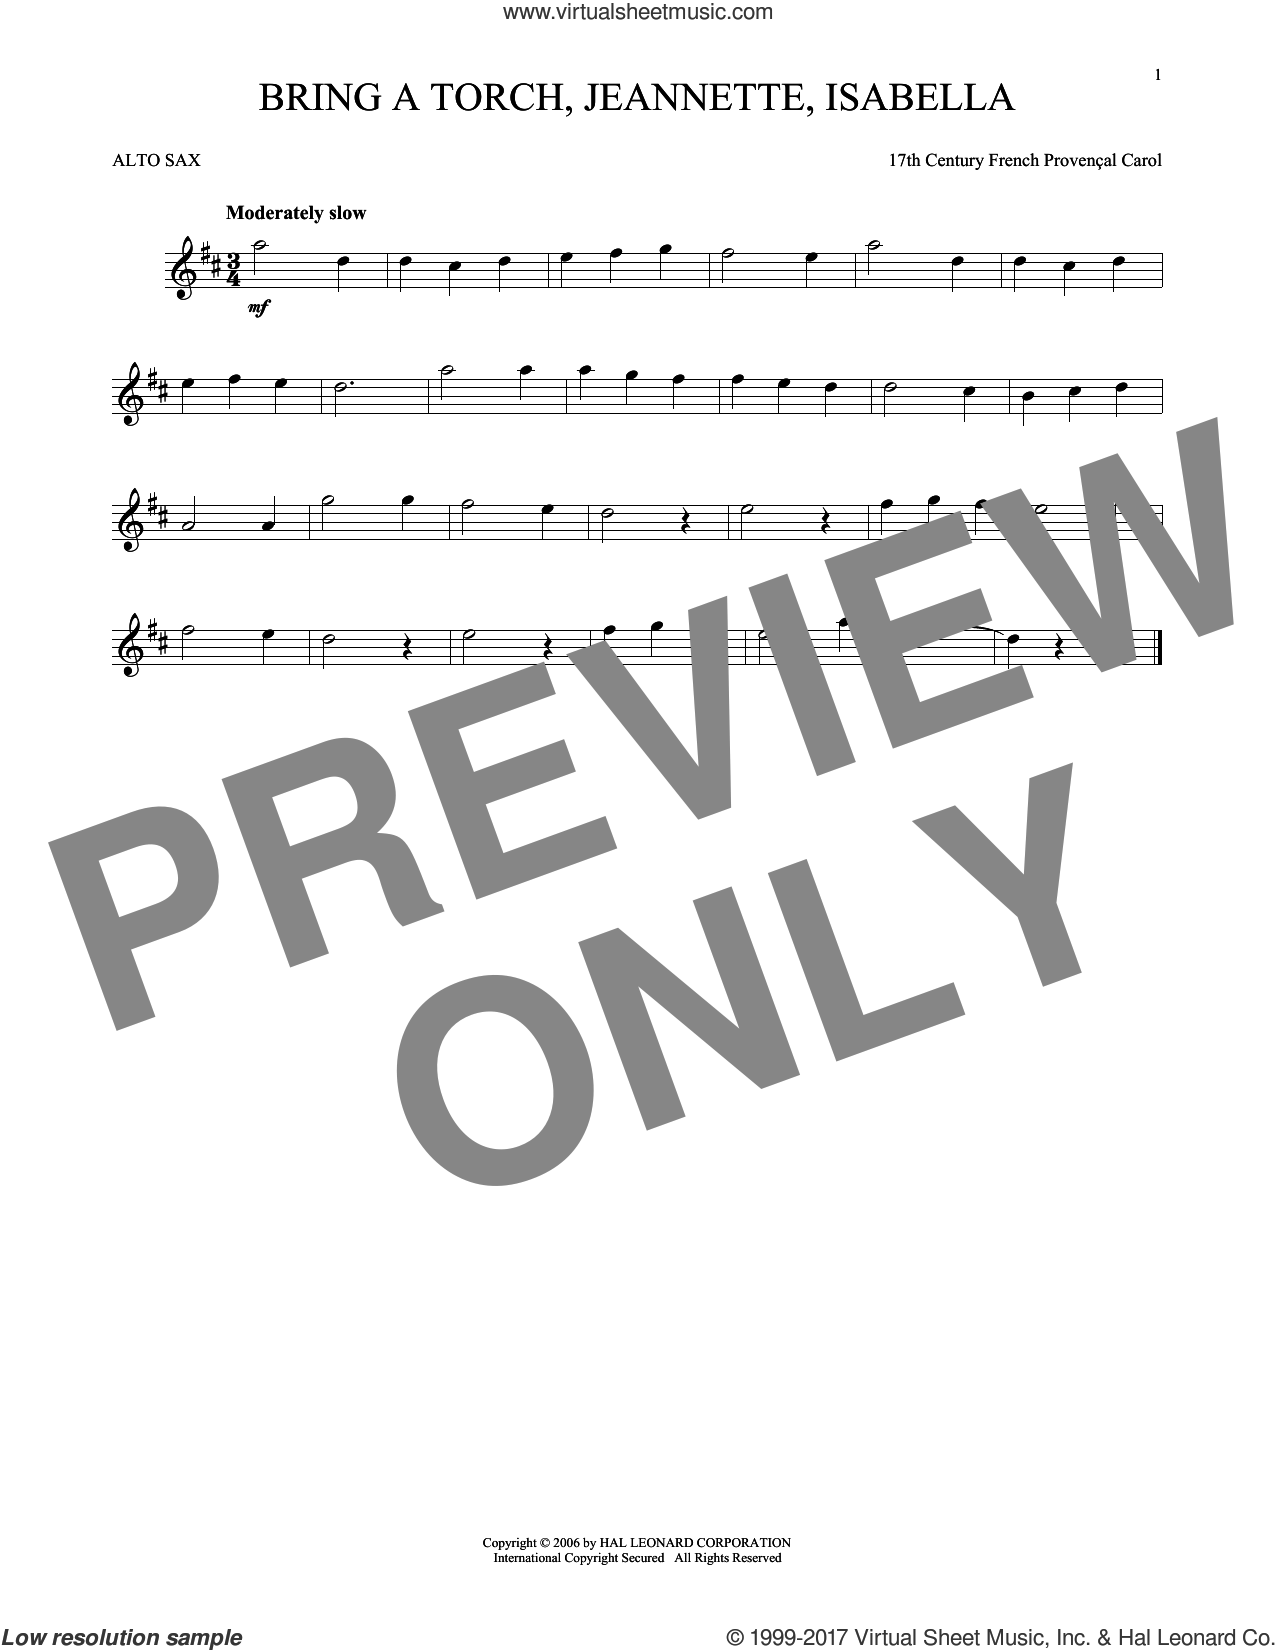 Bring A Torch, Jeannette, Isabella sheet music for alto saxophone solo by Anonymous and Miscellaneous, intermediate skill level